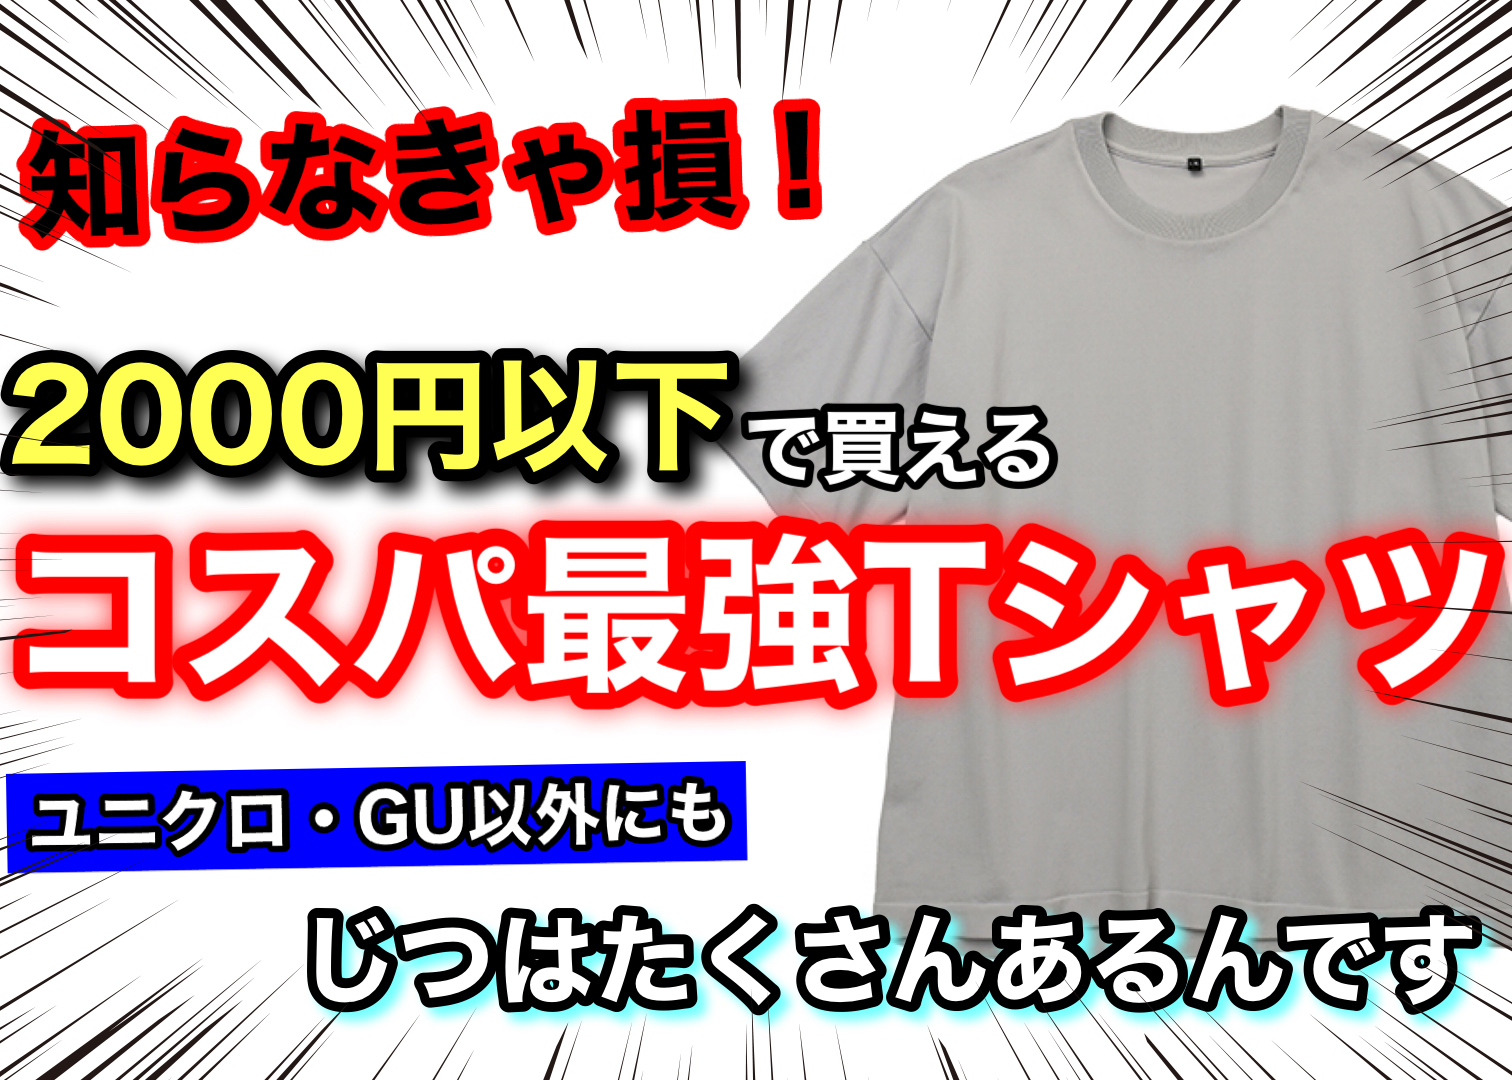 https://fineboys-online.jp/thegear/content/theme/img/org/article/3401/main.jpg?t=1622542761